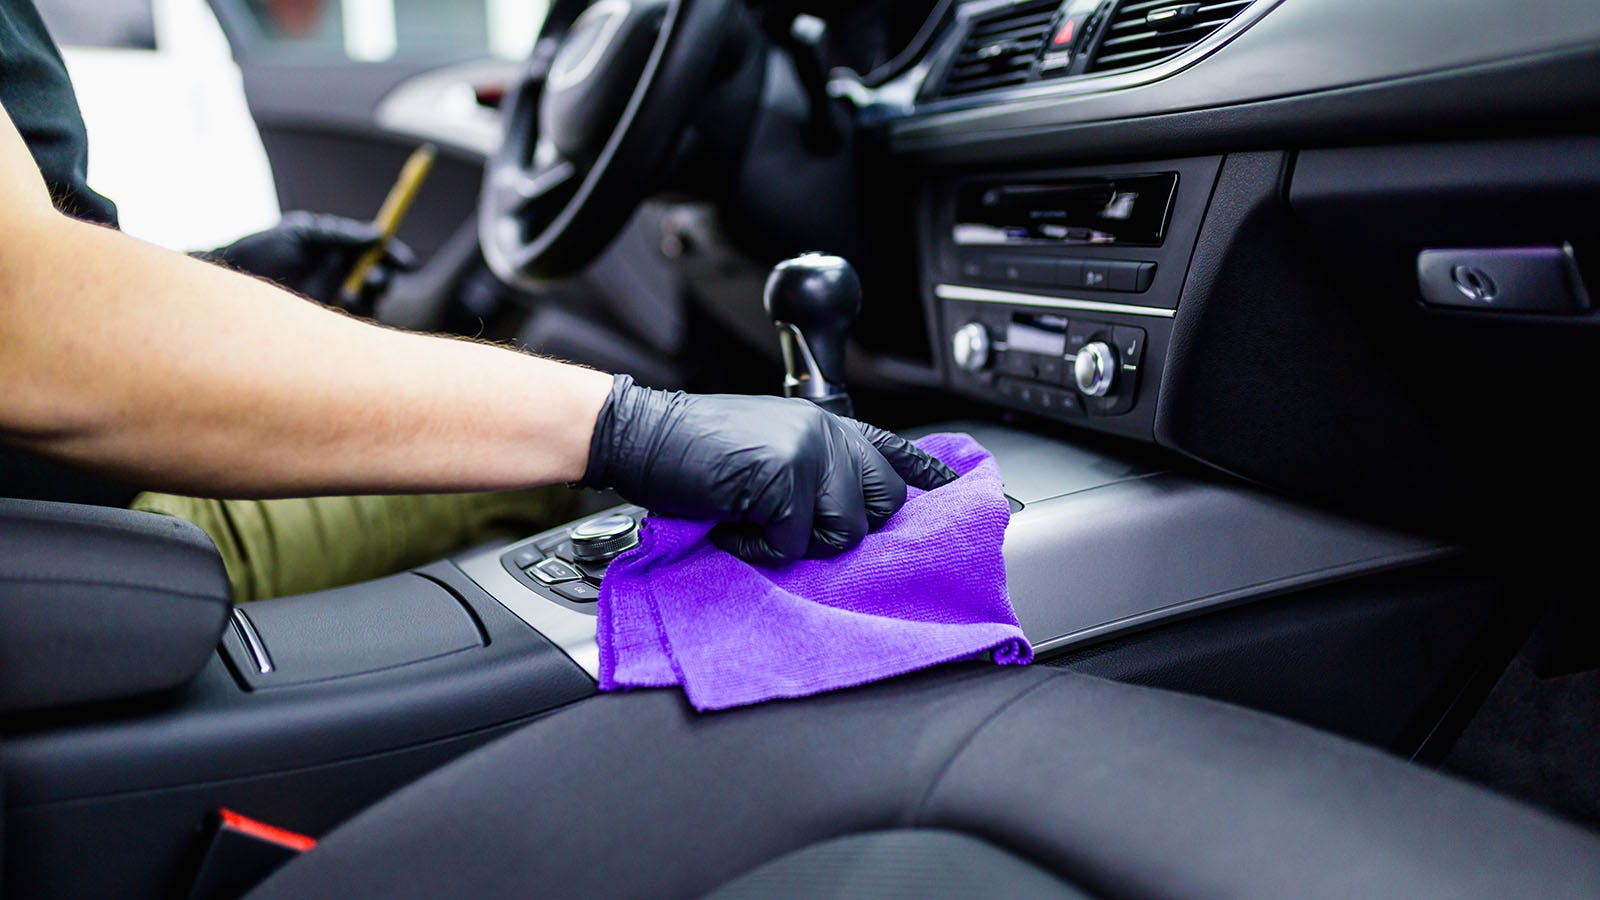 Person wearing nitrile gloves cleaning the interior of a car with a microfiber rag